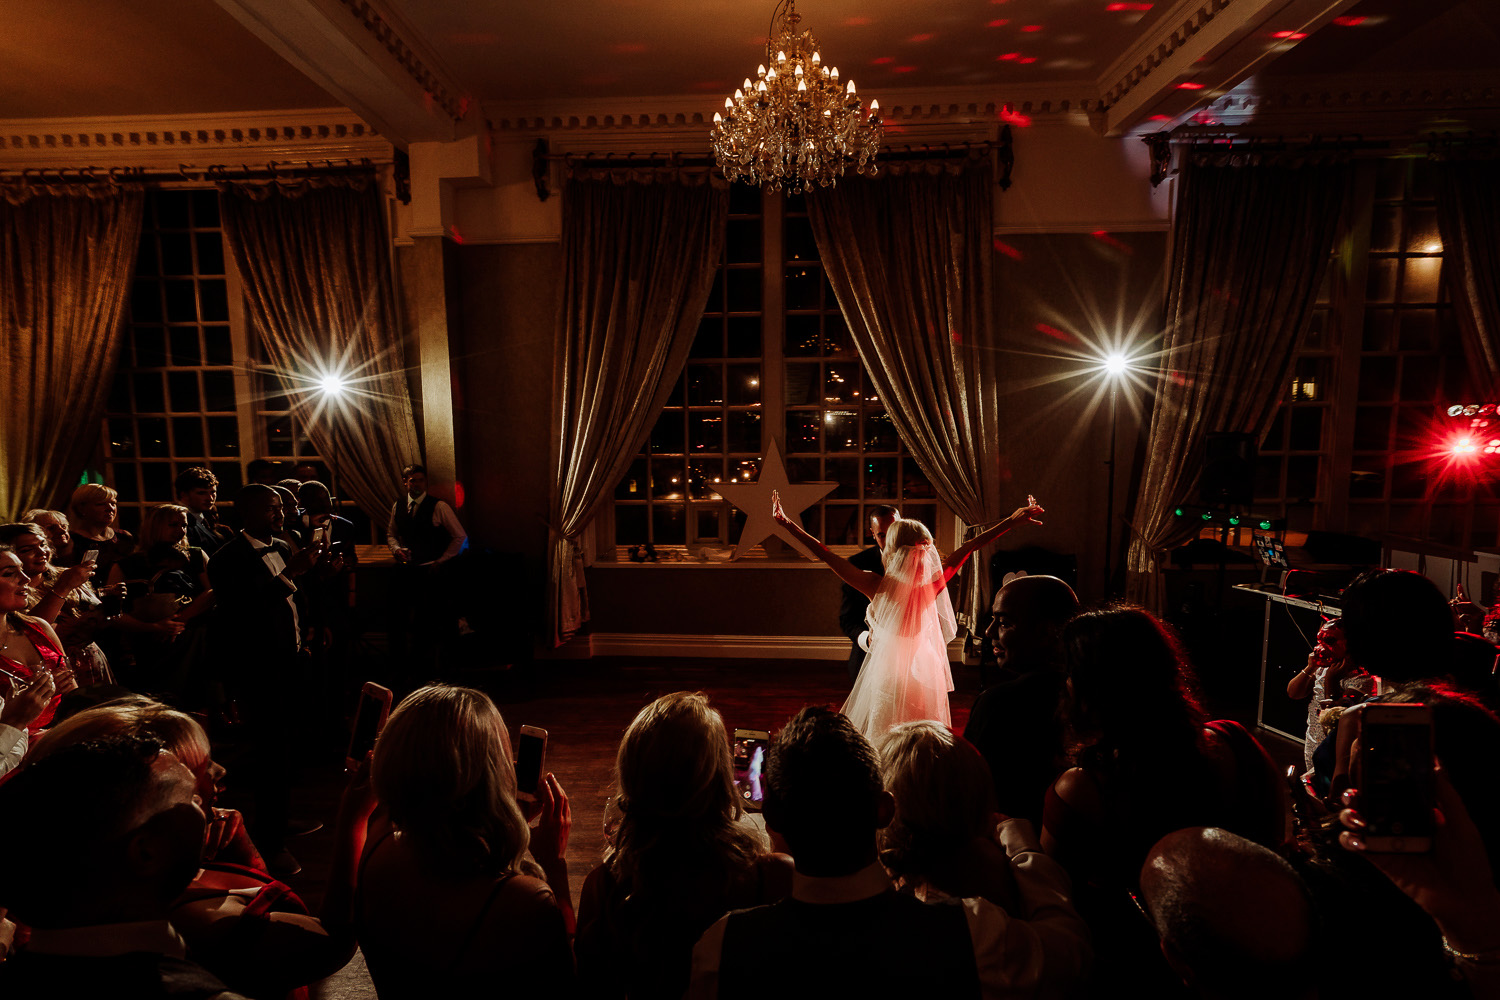 Bride dancing with groom holding her hands up in the air